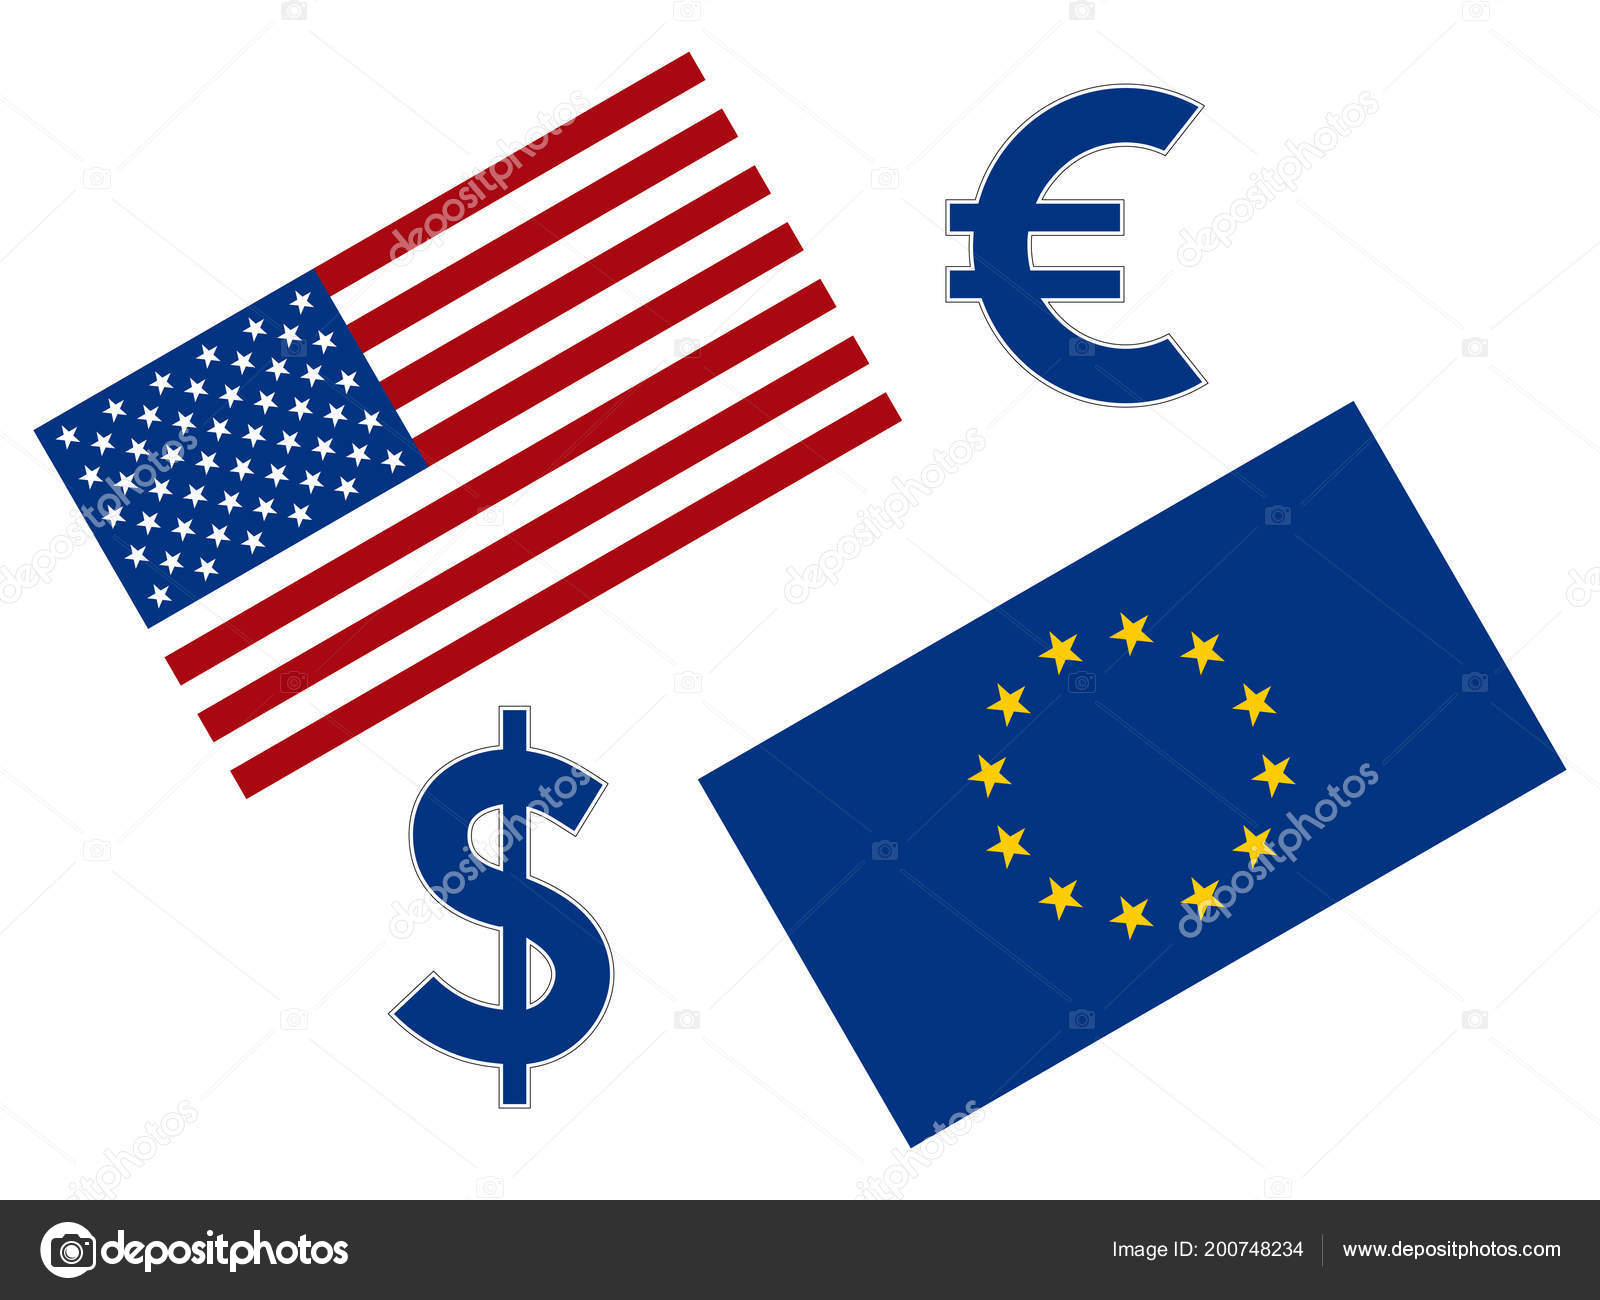 Eurusd Forex Currency Pair Illustration American Flag Euro Dollar